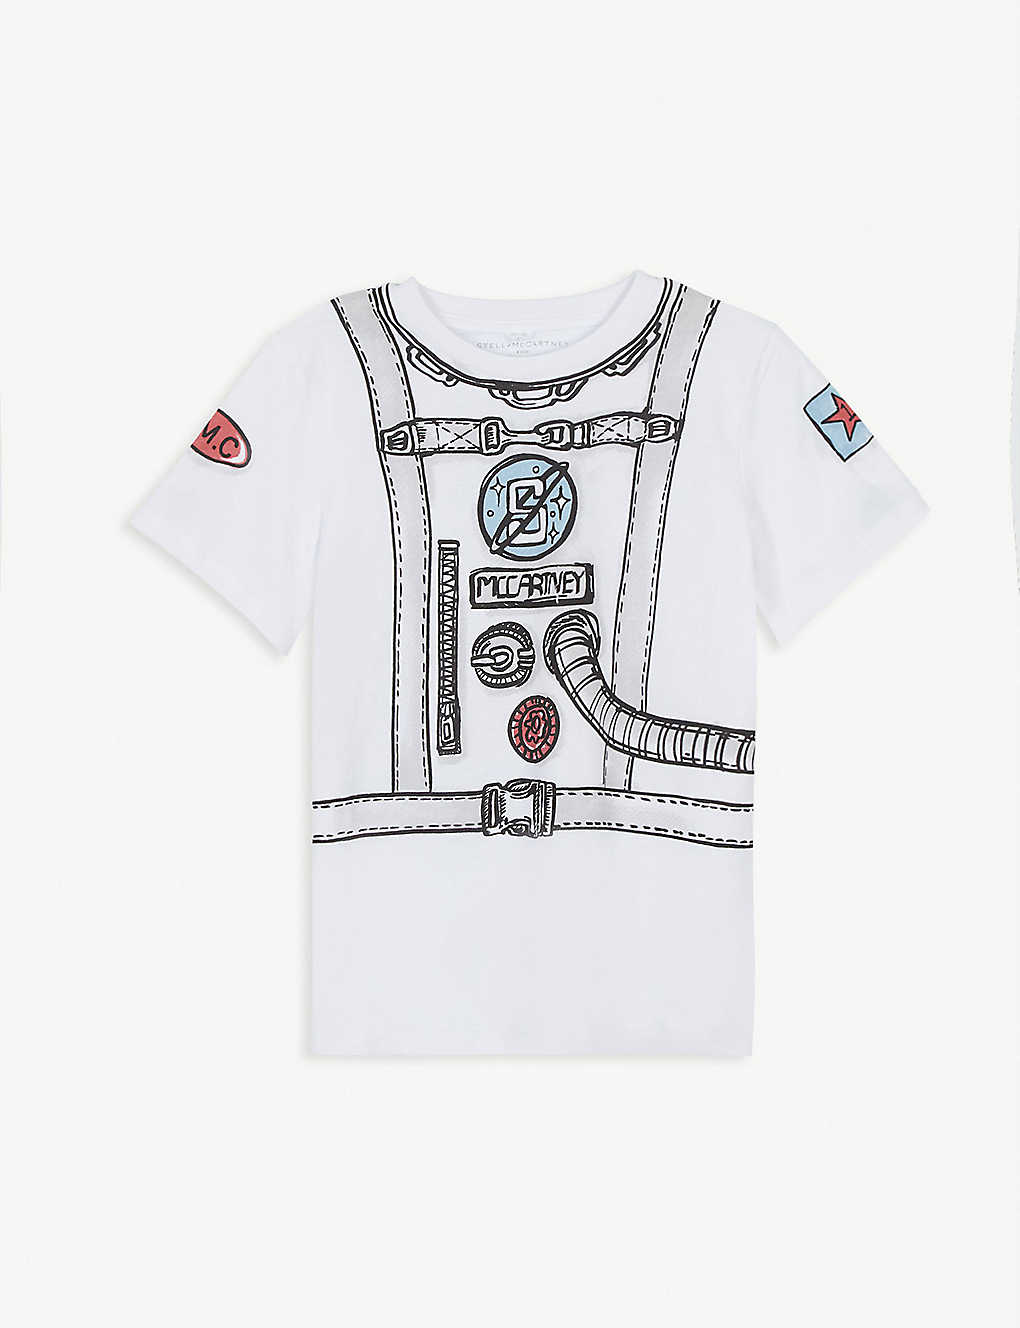 Stella Mccartney Shirts Space-print cotton-jersey T-shirt 4-12 years